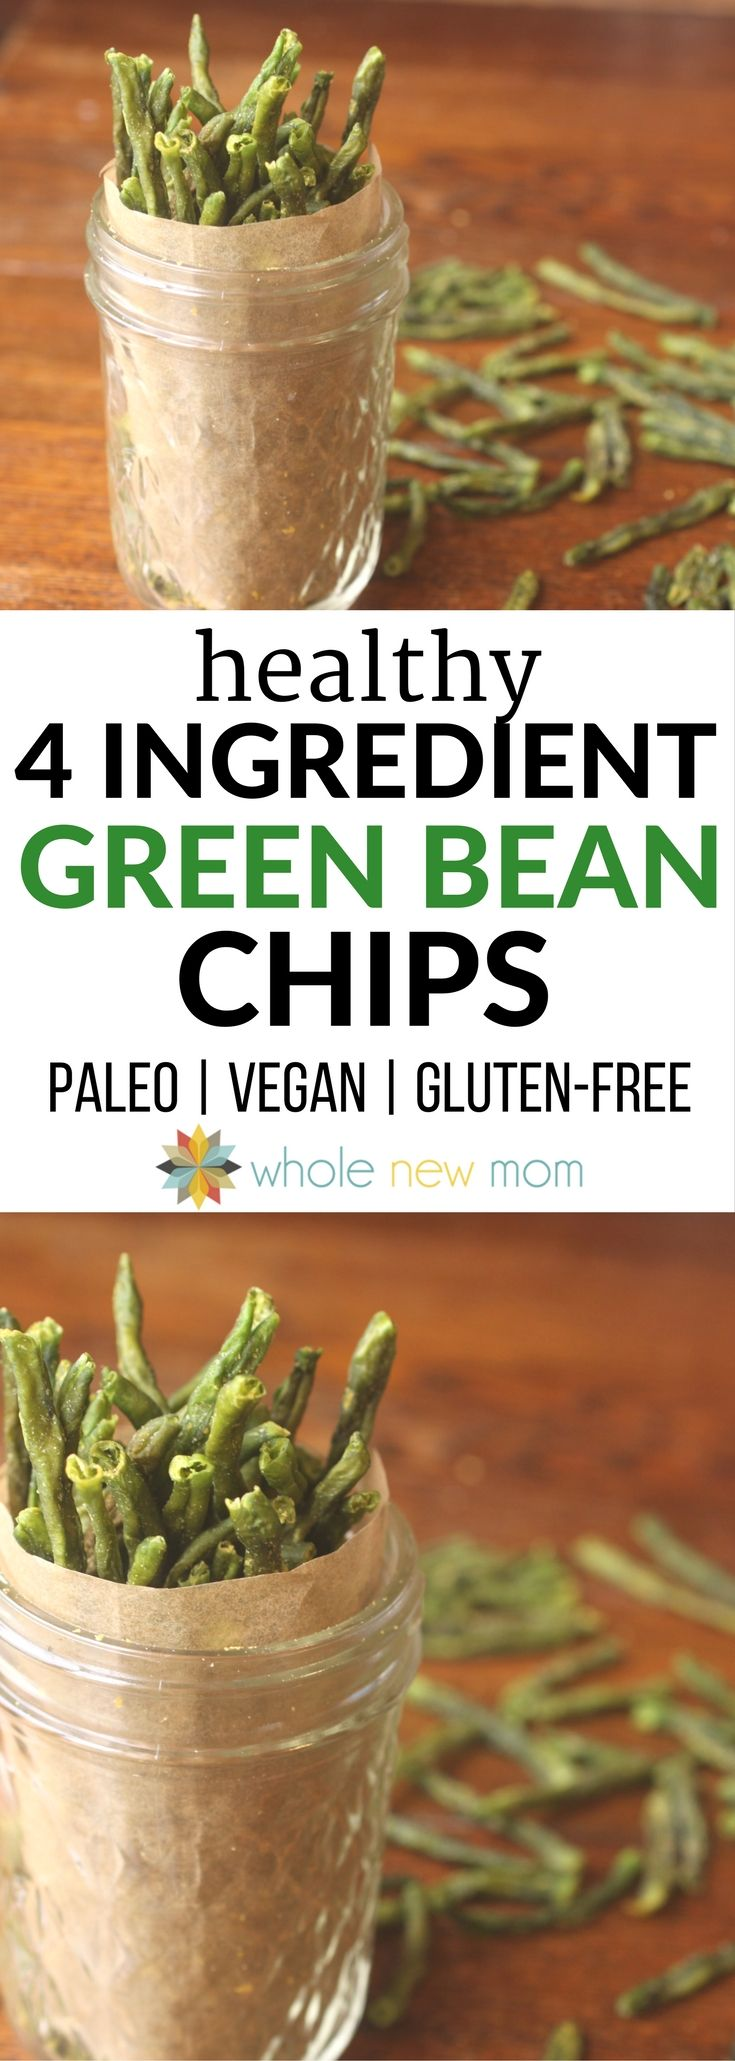 These Crispy Green Bean Chips a great healthy snack that's easy to make and a great way to get veggies into your diet!  via @wholenewmom